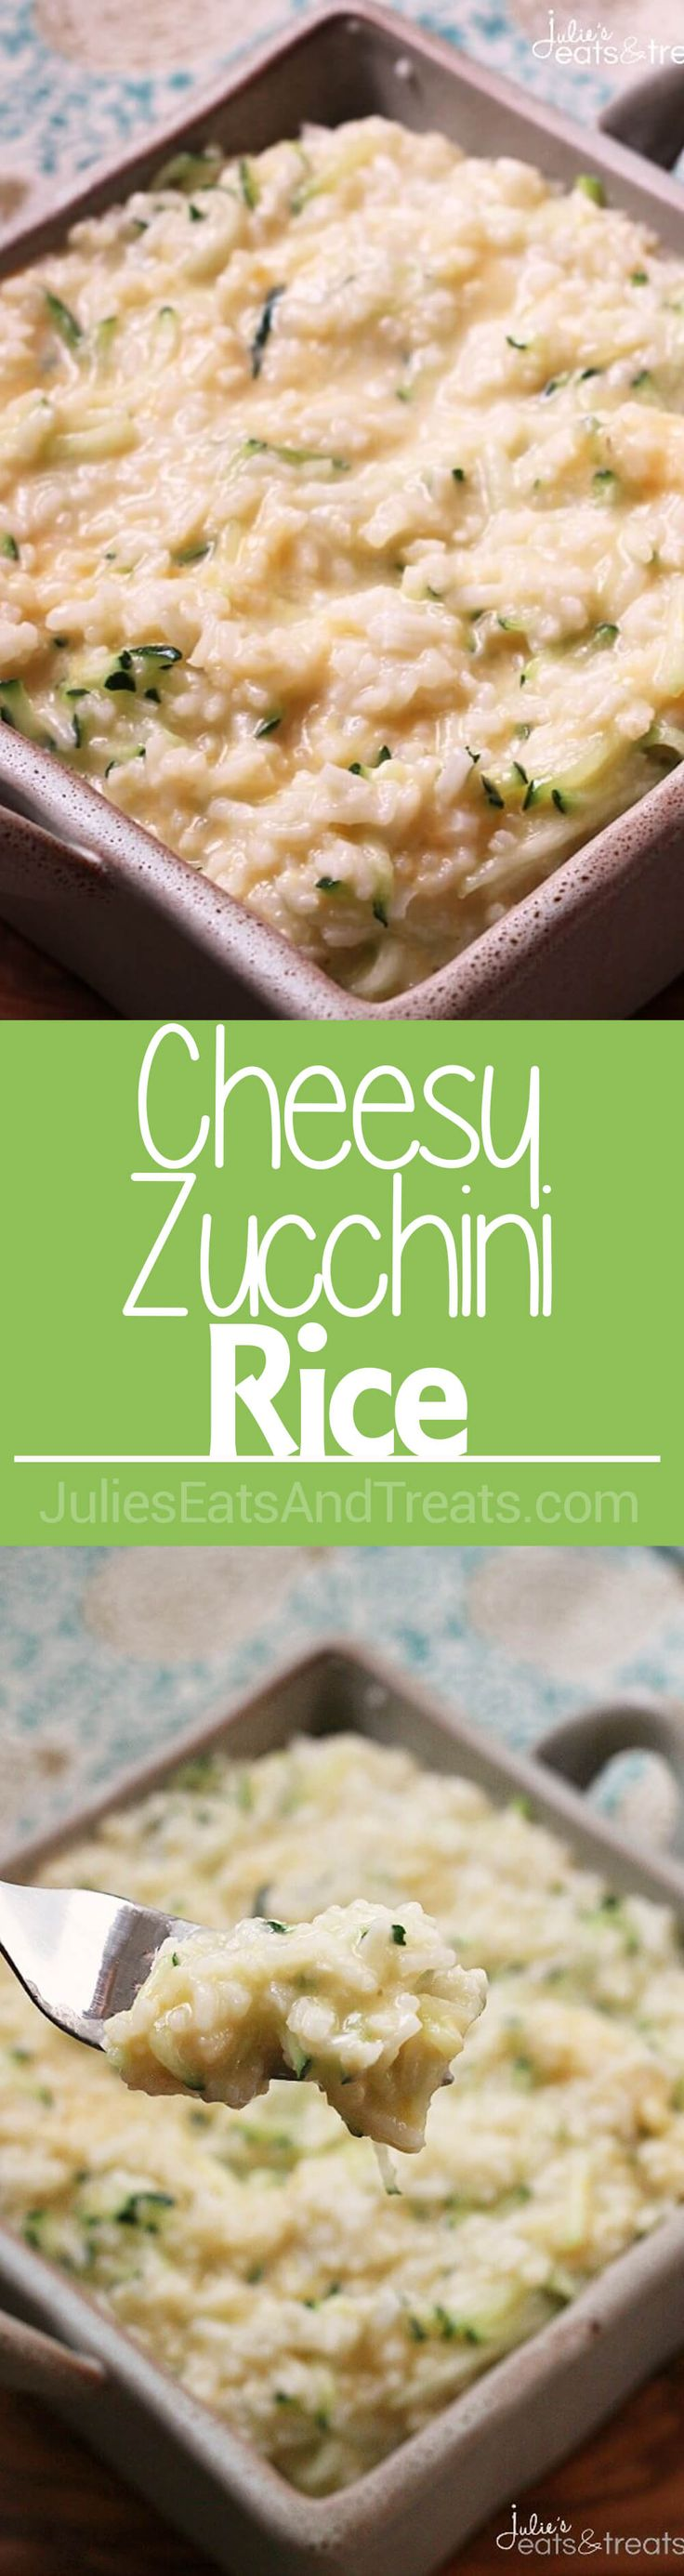 Cheesy Zucchini Rice ~ Easy Side Dish for the Week Night Loaded with Rice, Zucchini & Cheese! ~ http://www.julieseatsandtreats.com